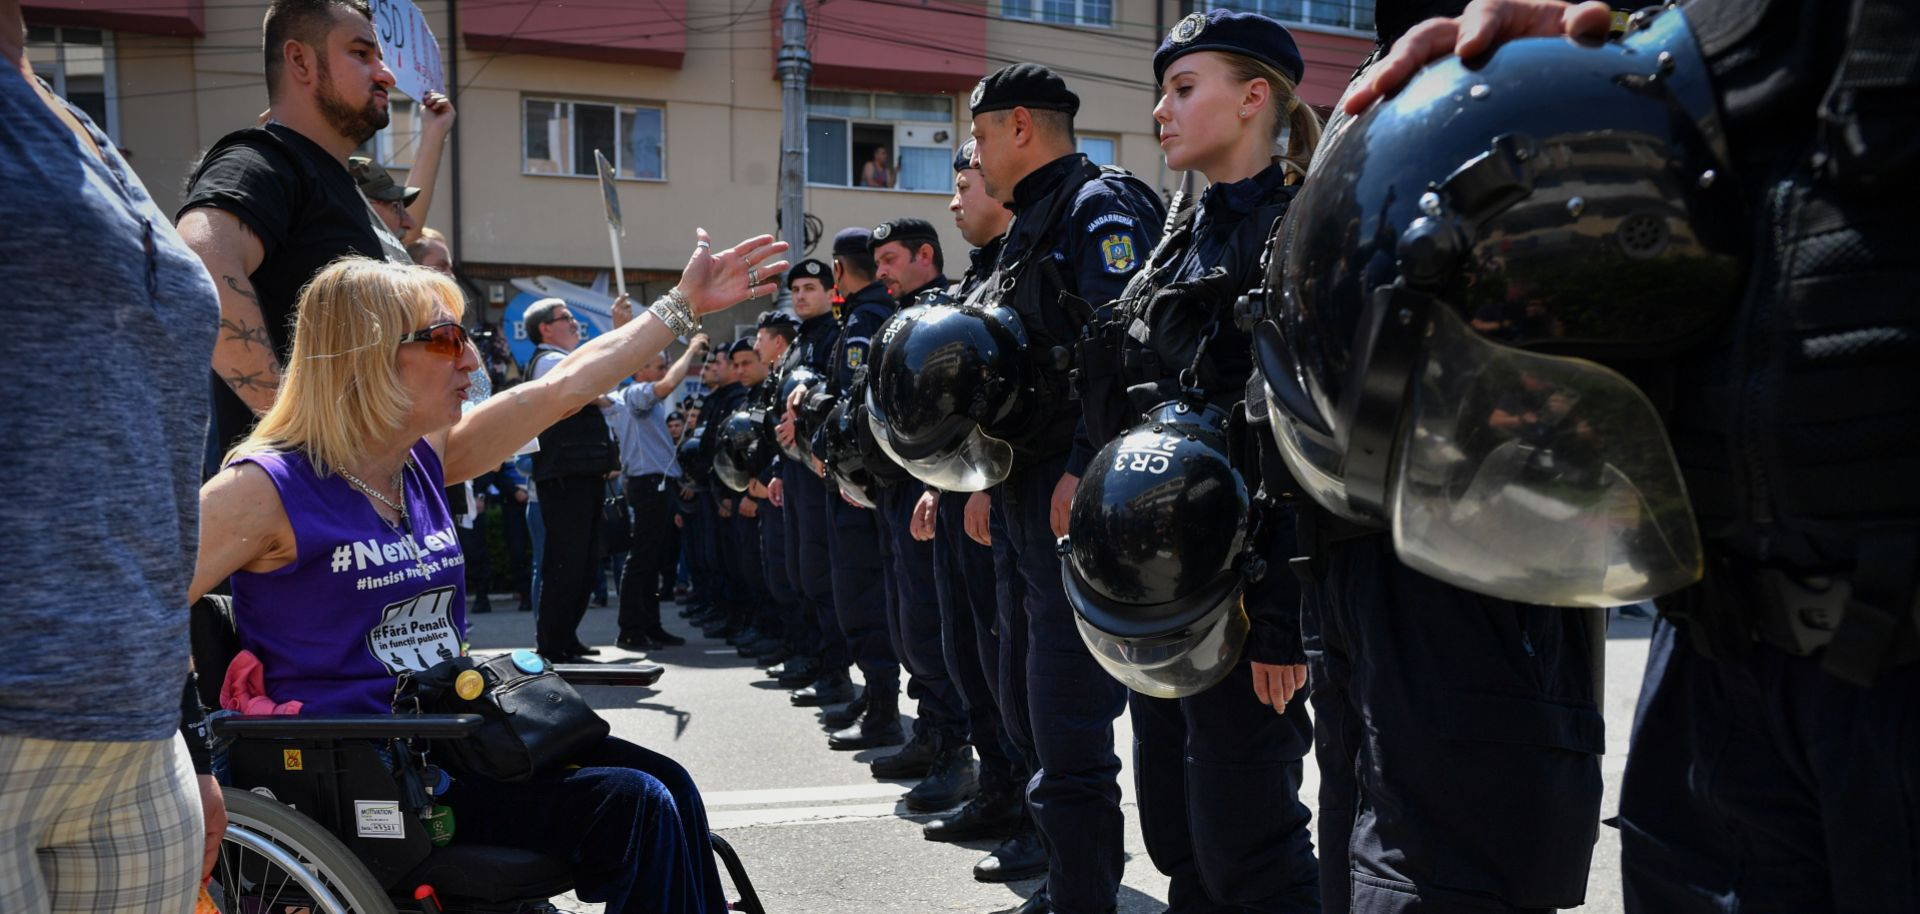 An anti-government protester shouts at supporters of Romania's Social Democratic Party (PSD) coming to attend an EU elections rally in Targoviste on May 19, 2019.